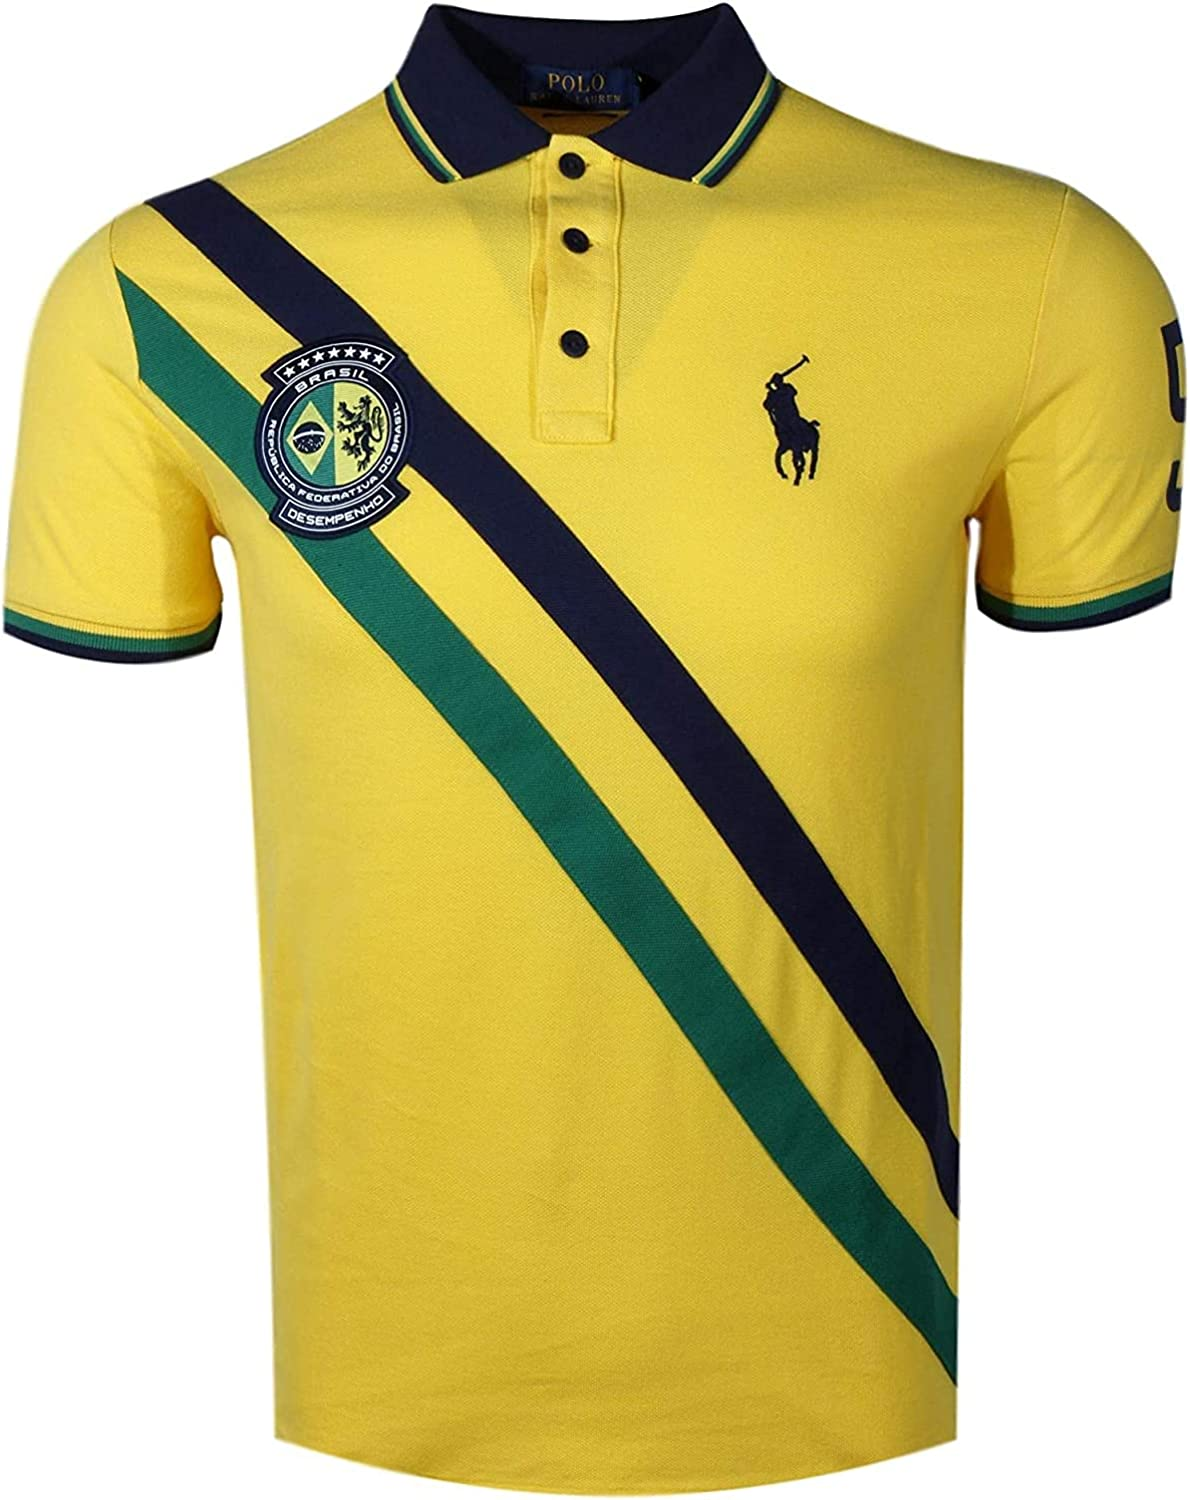 Polo Ralph Lauren Mens Custom Slim Fit Country Polo- Spring 2019 (X-Large, Brazil Yellow)